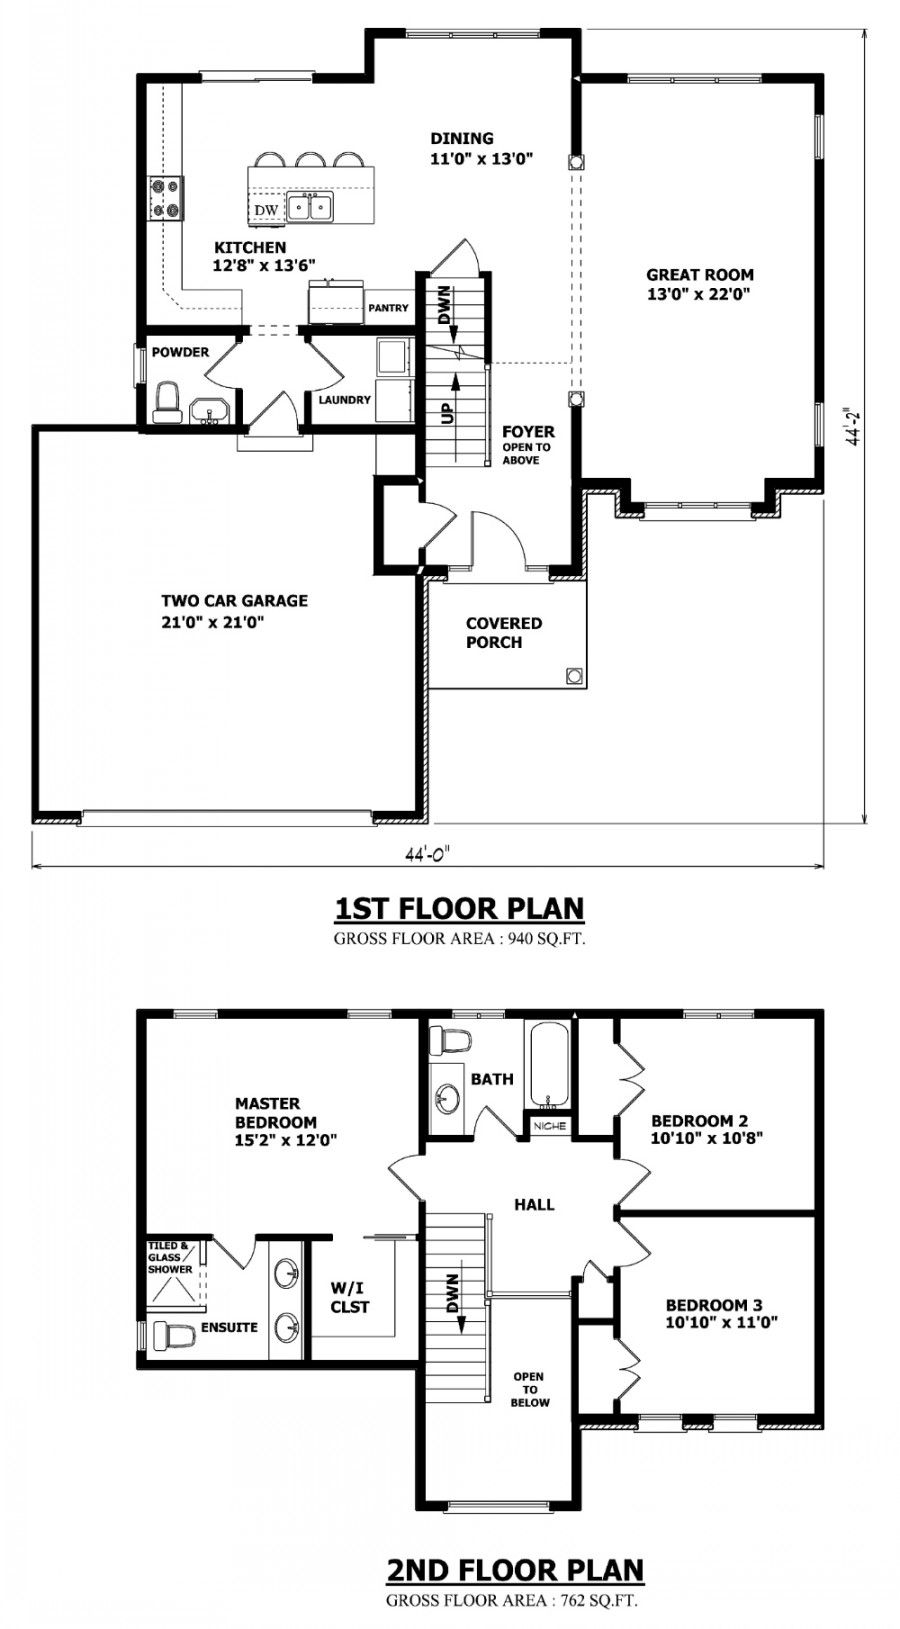 Home designs custom house plans stock house plans amp for Two story house blueprints